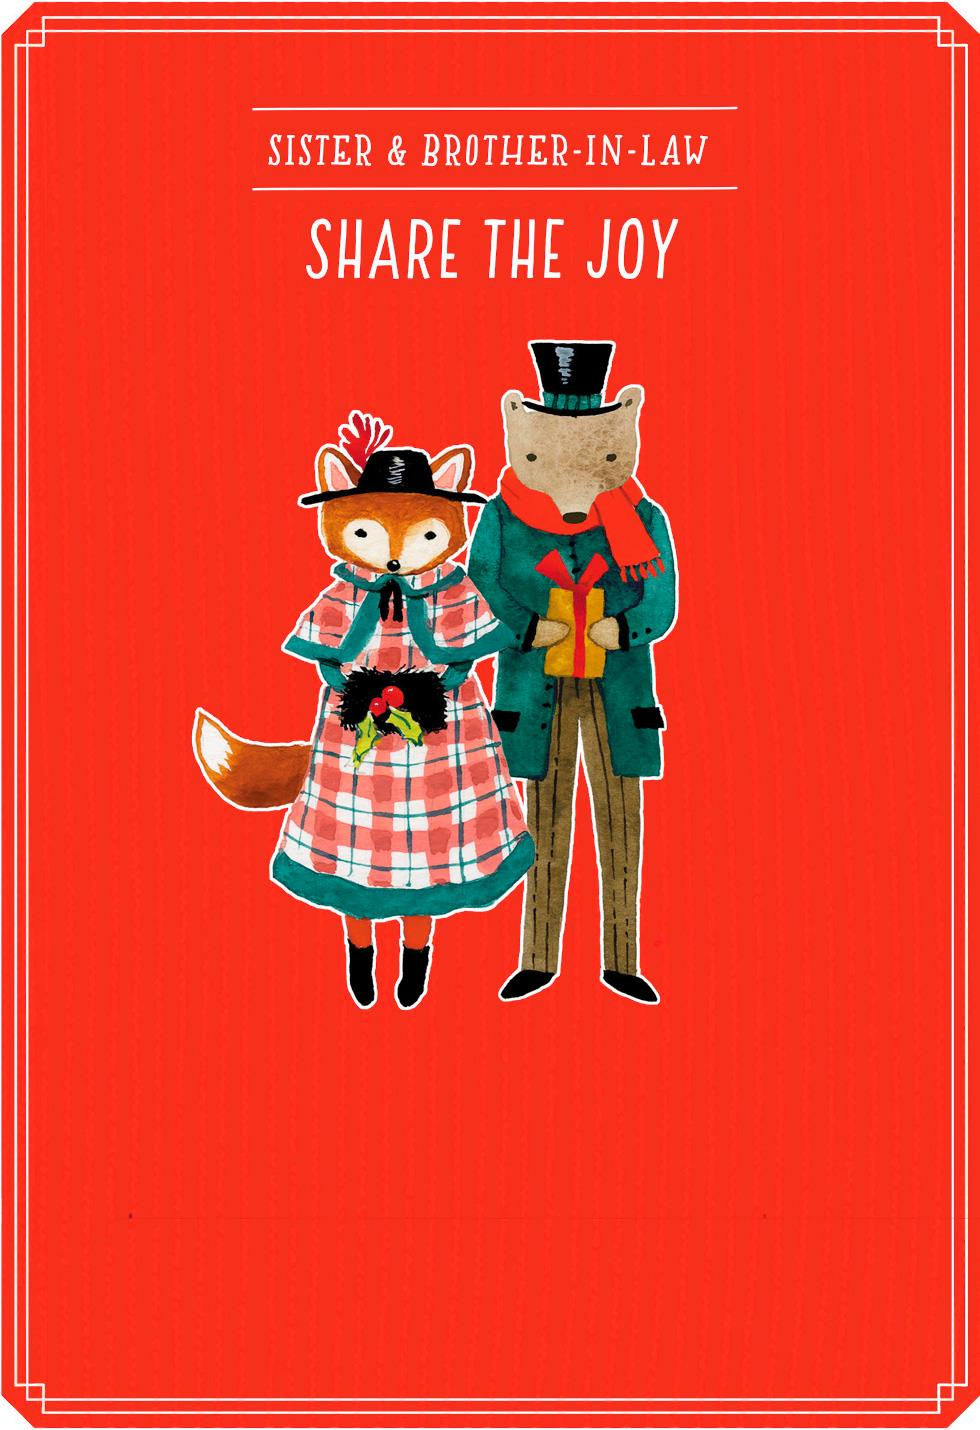 Share The Joy Christmas Card For Sister And Brother In Law